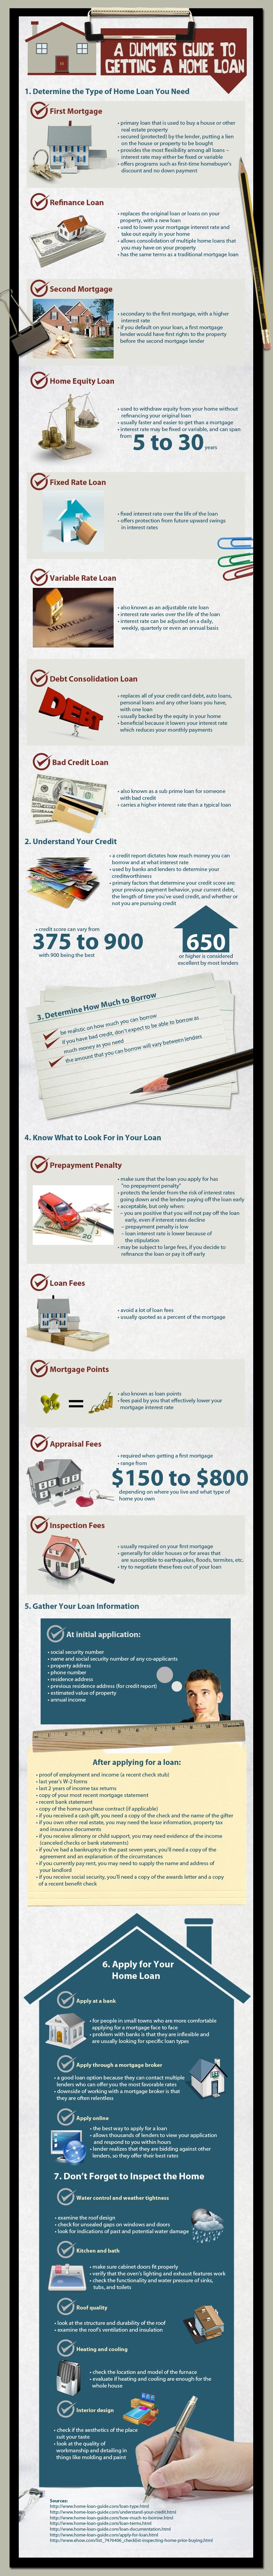 How To Get An Unsecured Home Improvement Loan  Without Equity